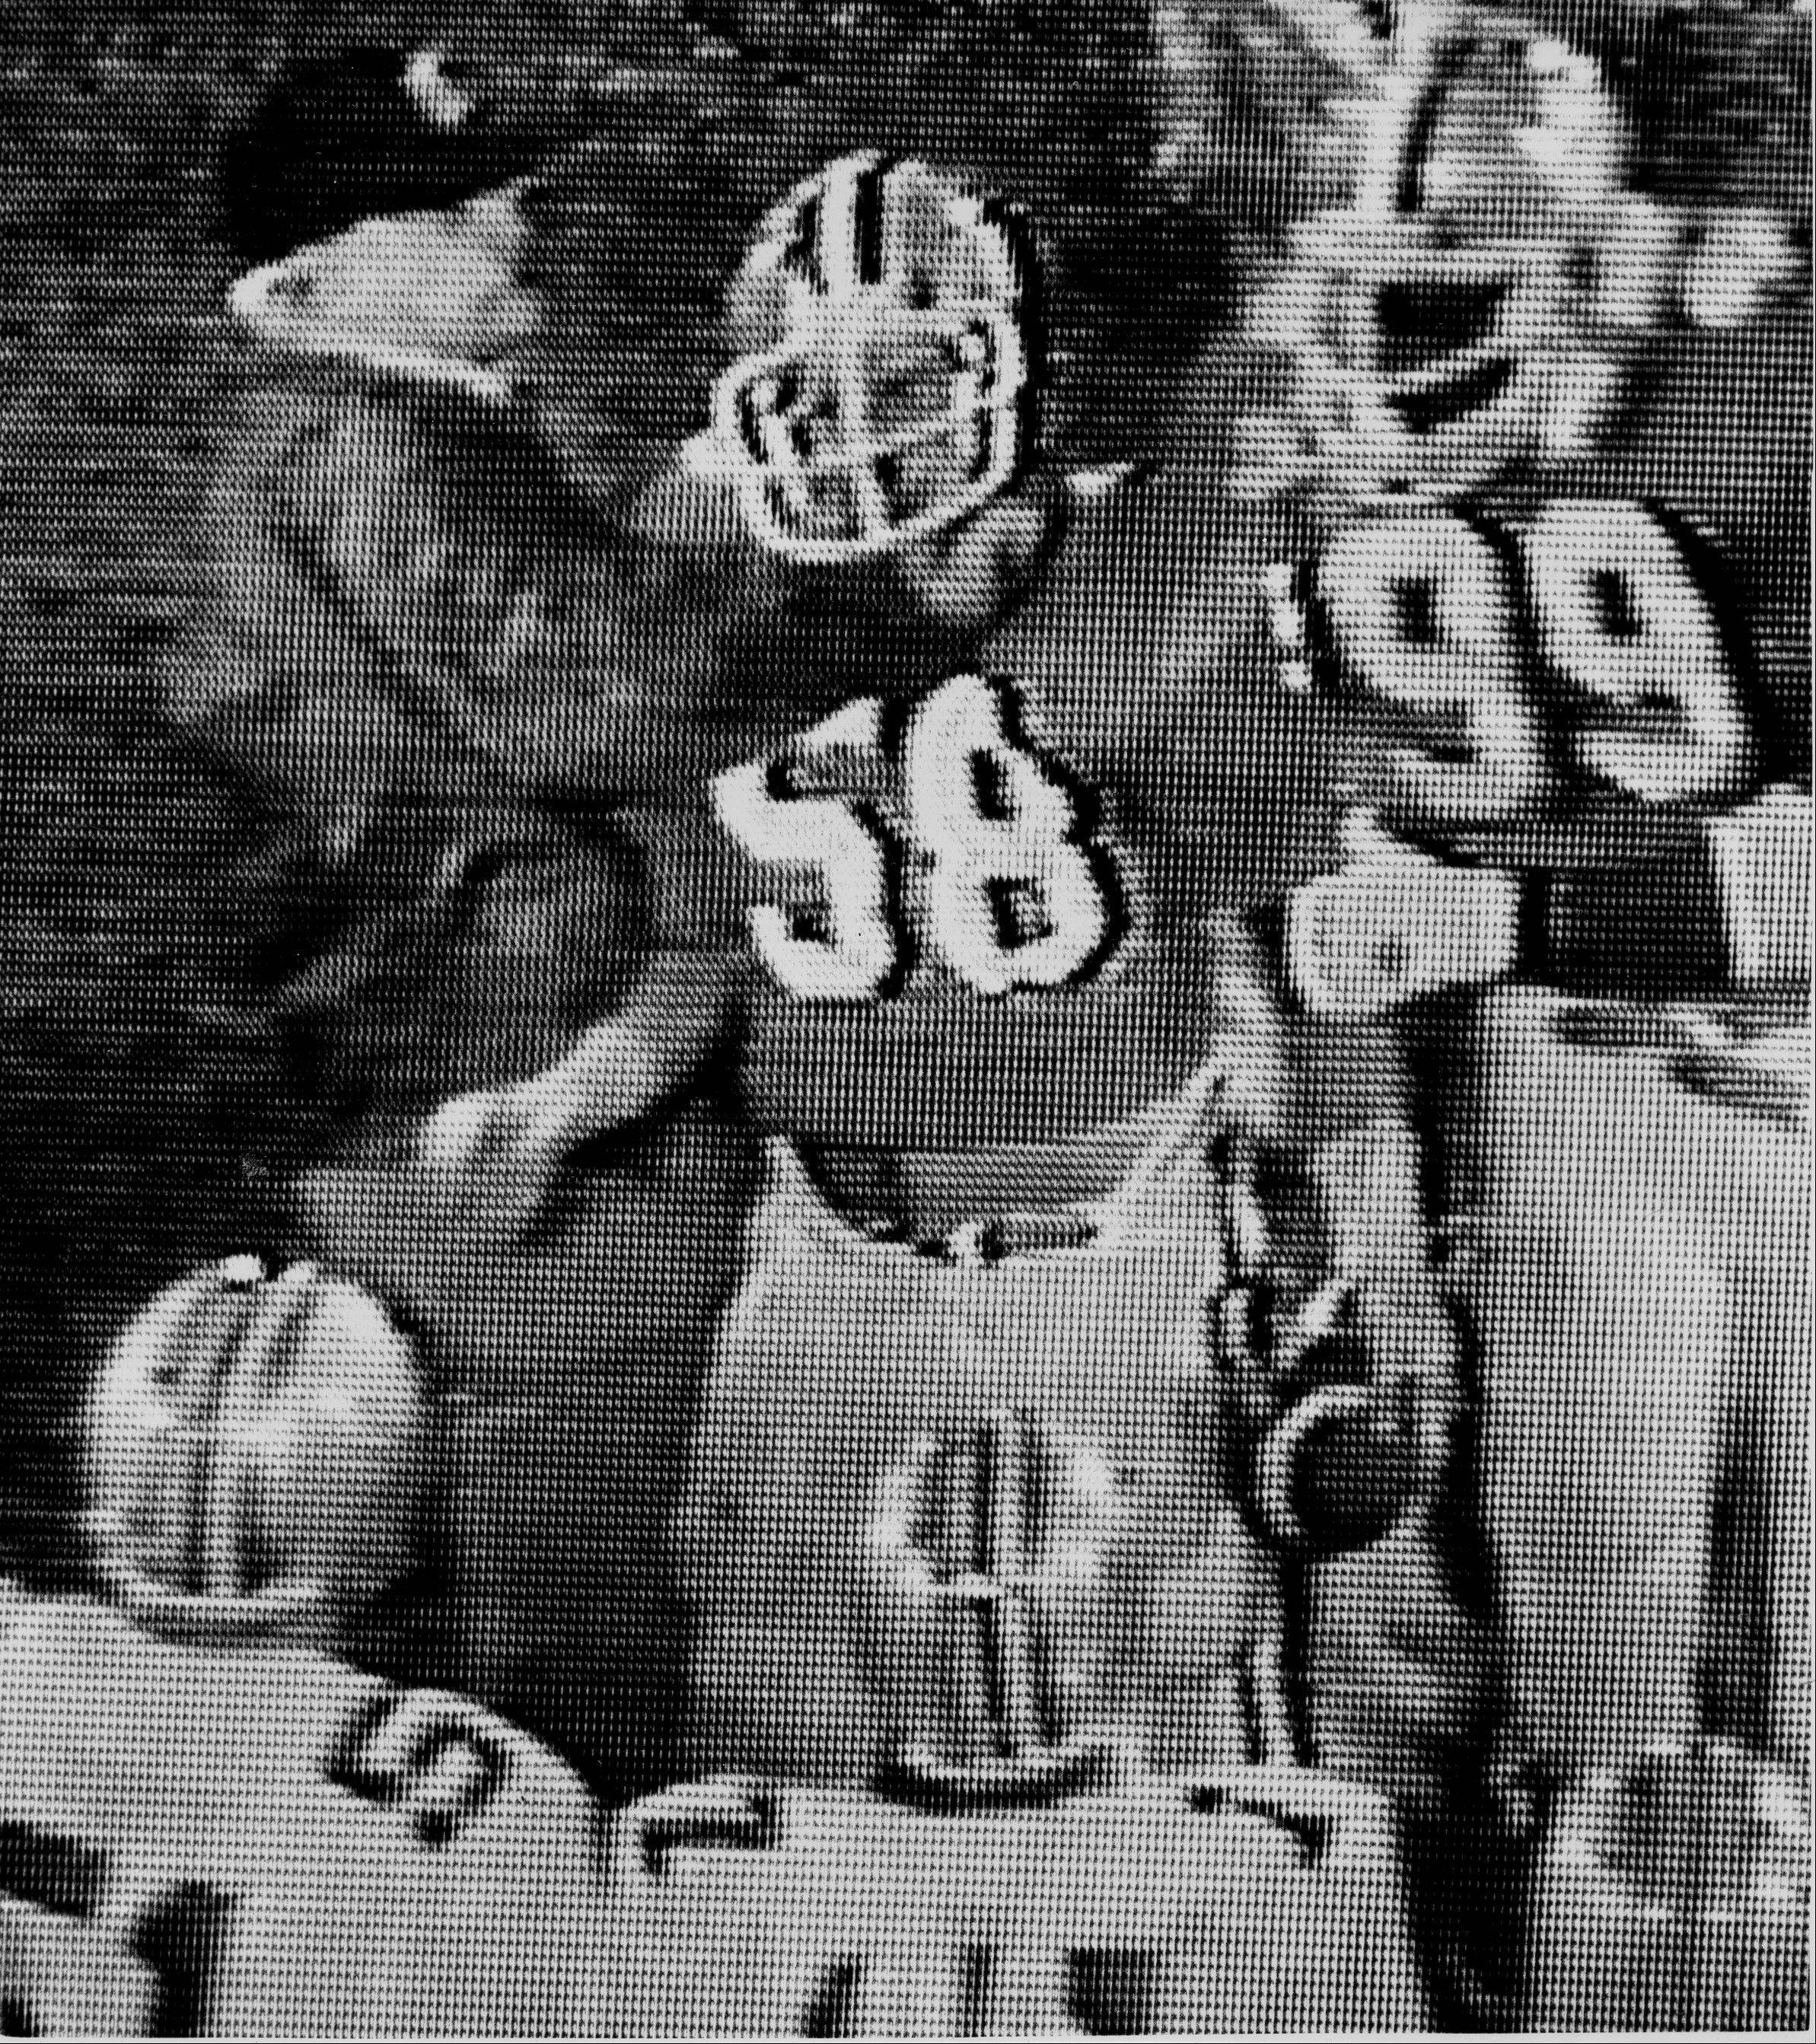 A shot from a monitor at the ABC studios in Washingtom shows Ohio State University coach Woody Hayes, left, after he struck Clemson player Charlie Bauman on the sideline at the 1978 Gator Bowl in Jacksonville, Fla.